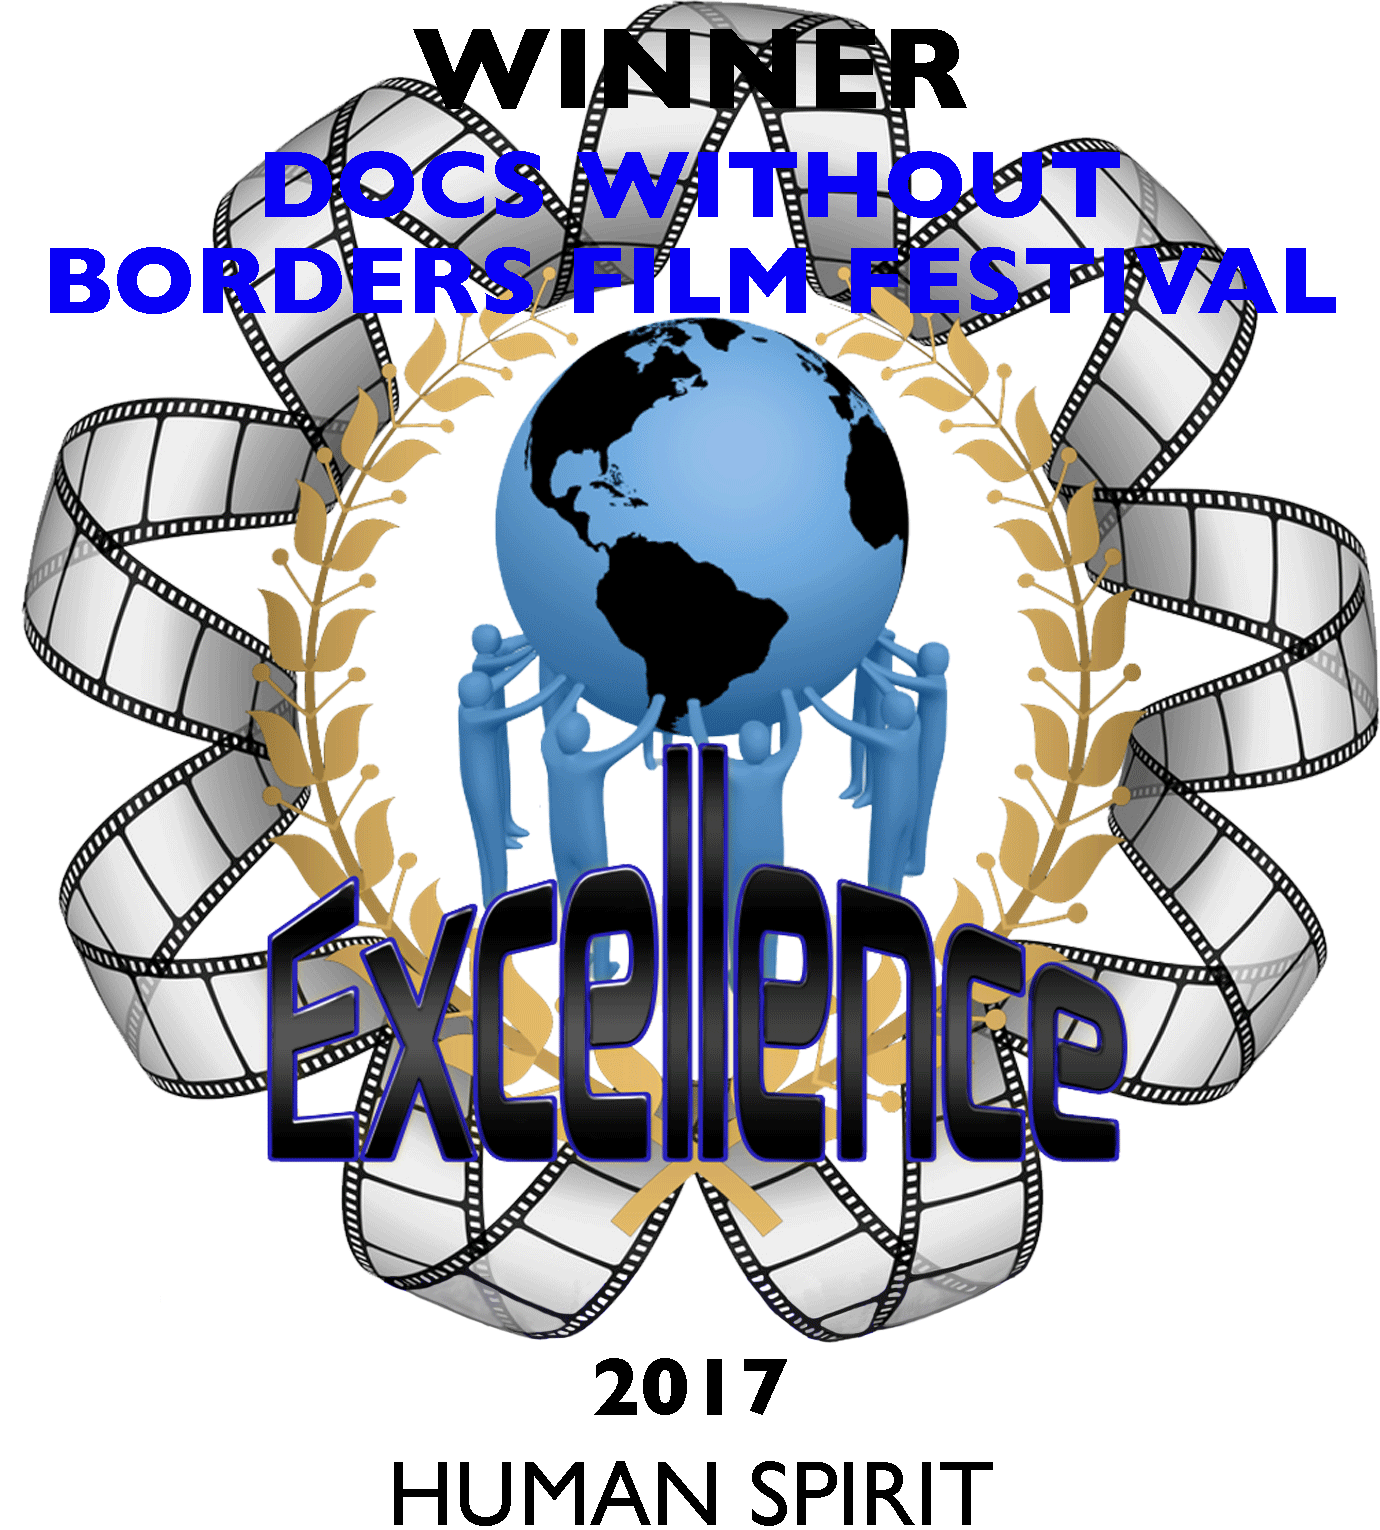 Sofia Wellman - Whats Love Got To Do With It - Film by Sofia Wellman - Docs Without Borders Film Festival - Winner Of Excellence - Human Spirit - 2017